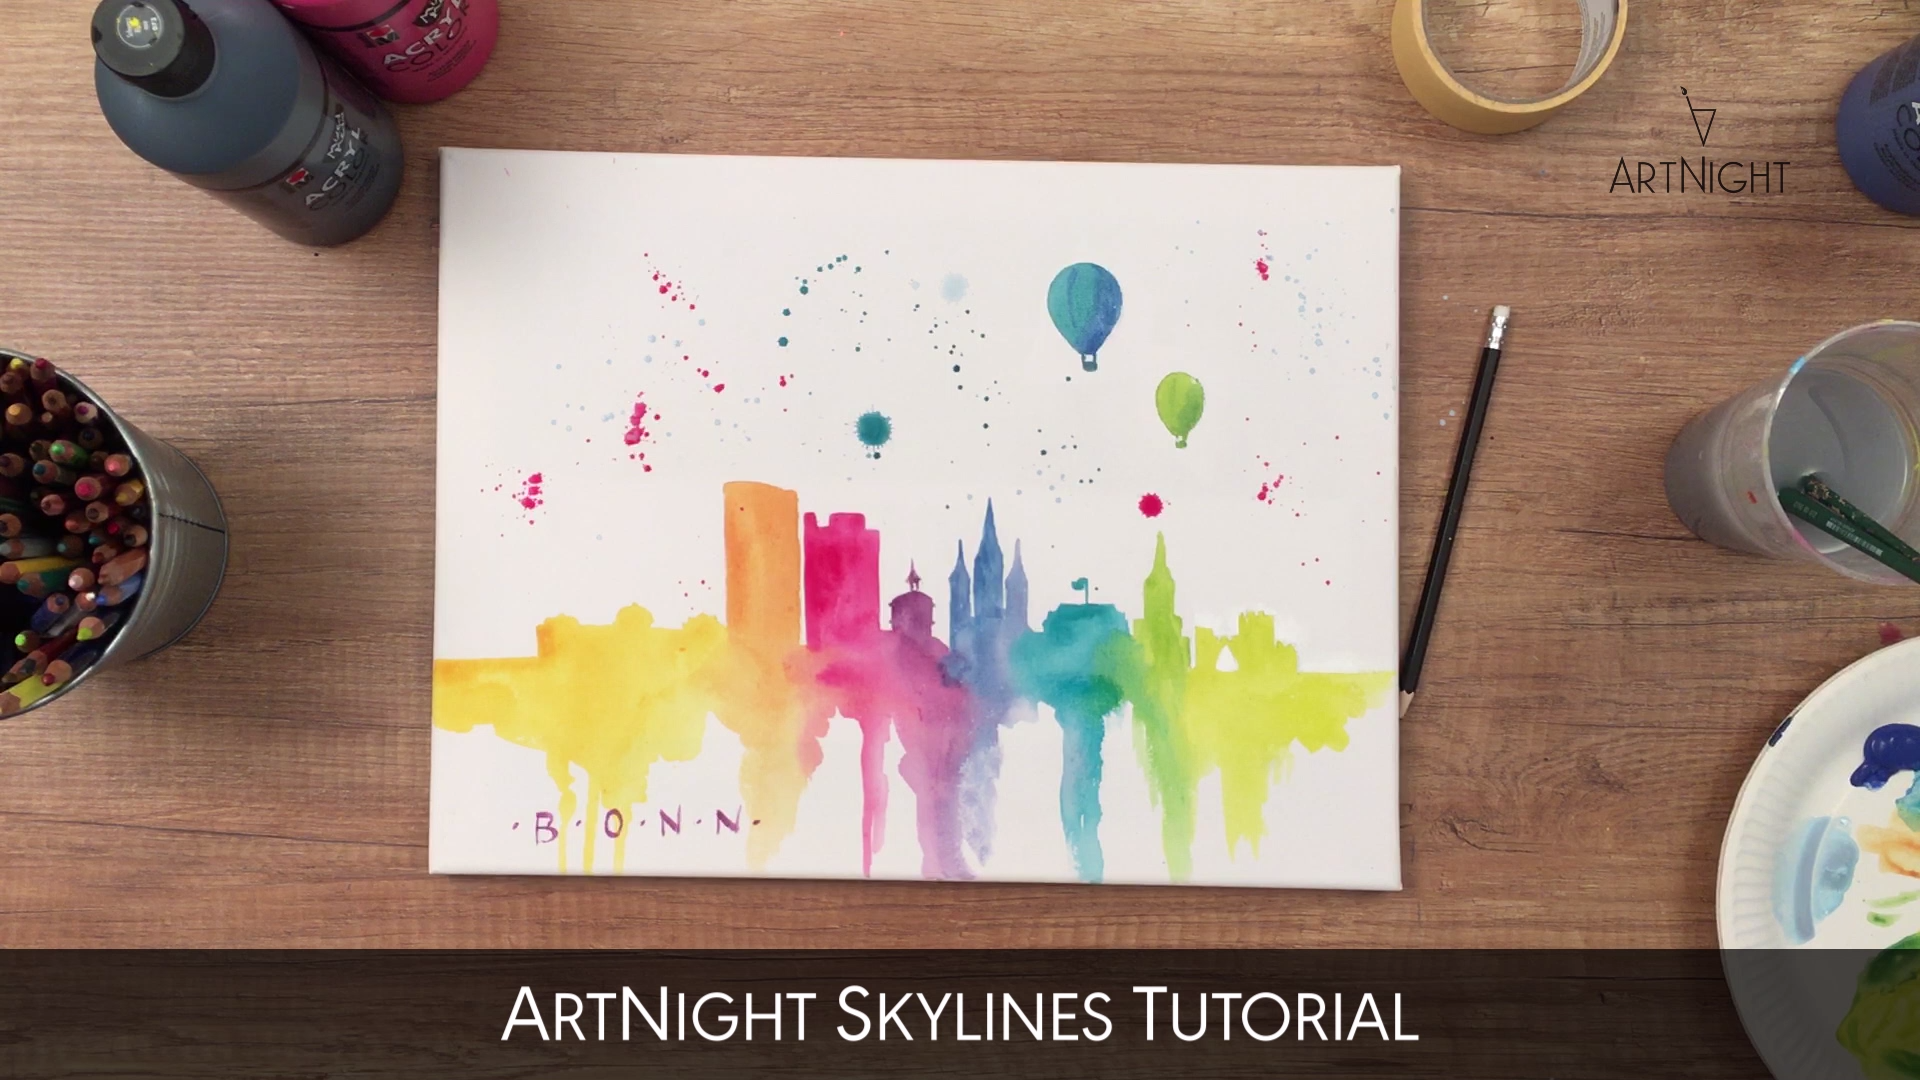 Video instructions: paint the skyline